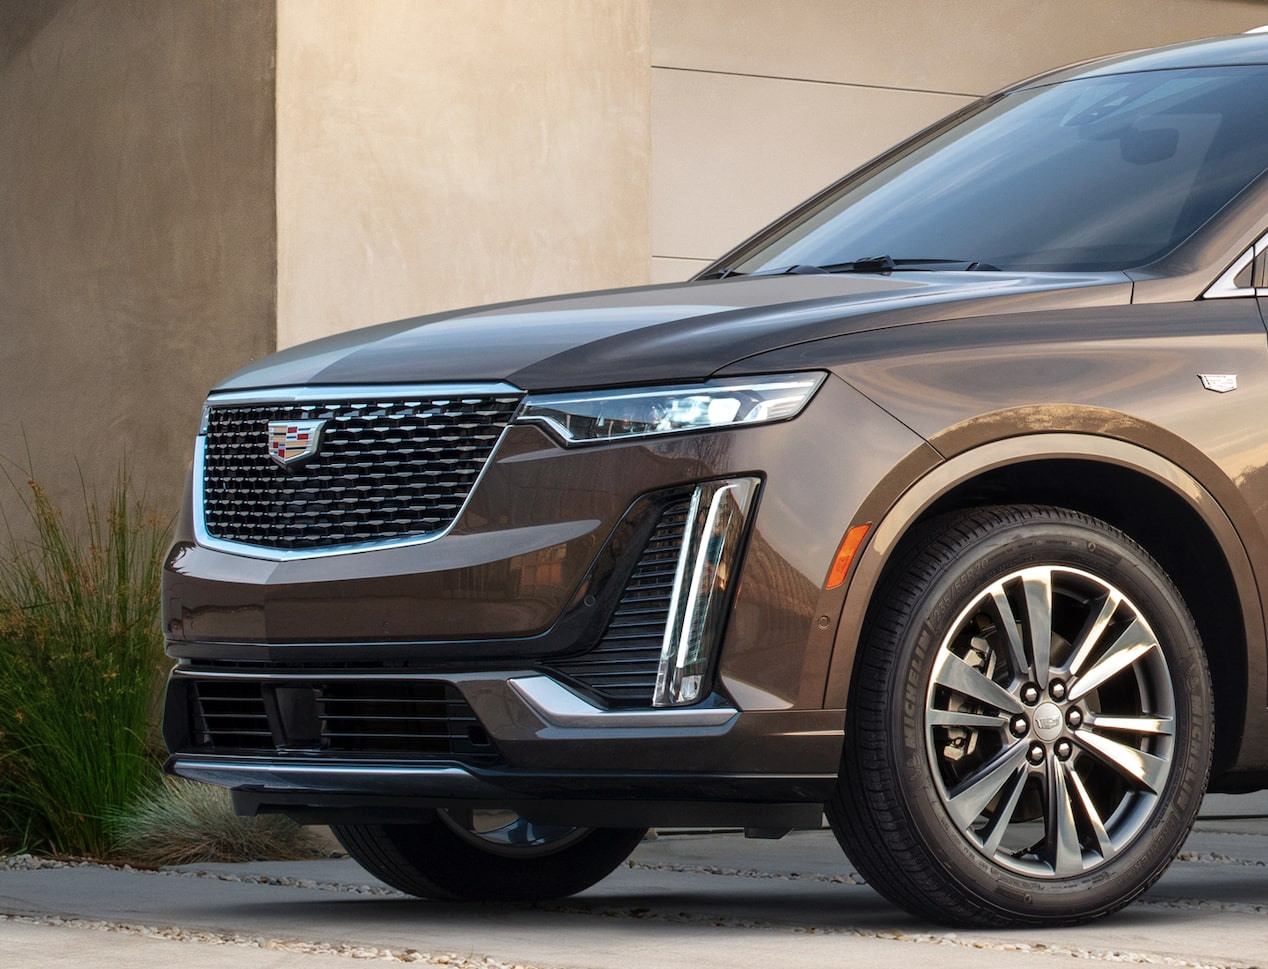 Cadillac XT6 Front Grille Close Up